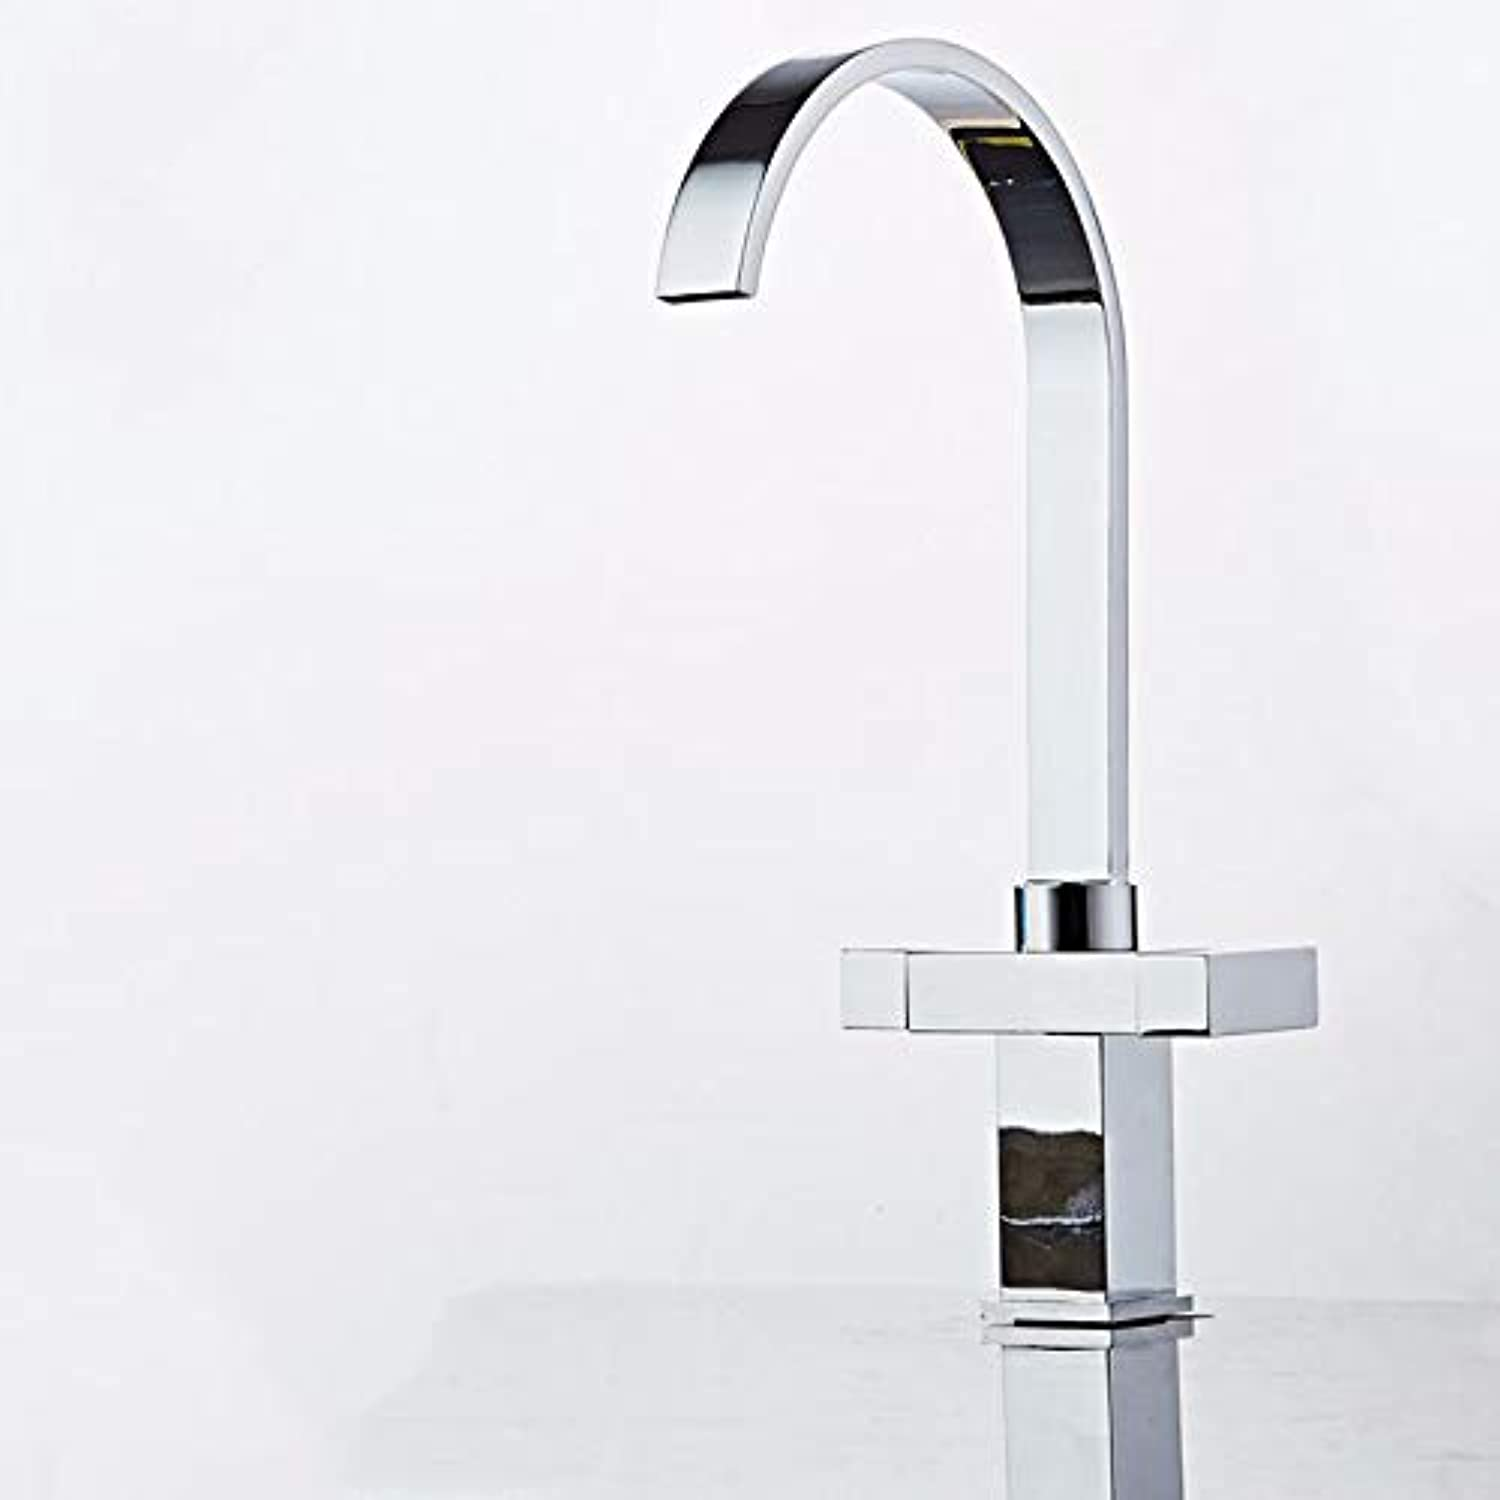 Basin Faucet Bathroom Sink Mixer Faucet Single Handle Lead-Free Copper Chrome Kitchen Faucet with Waterfall Spout Hot and Cold Tap Water Available